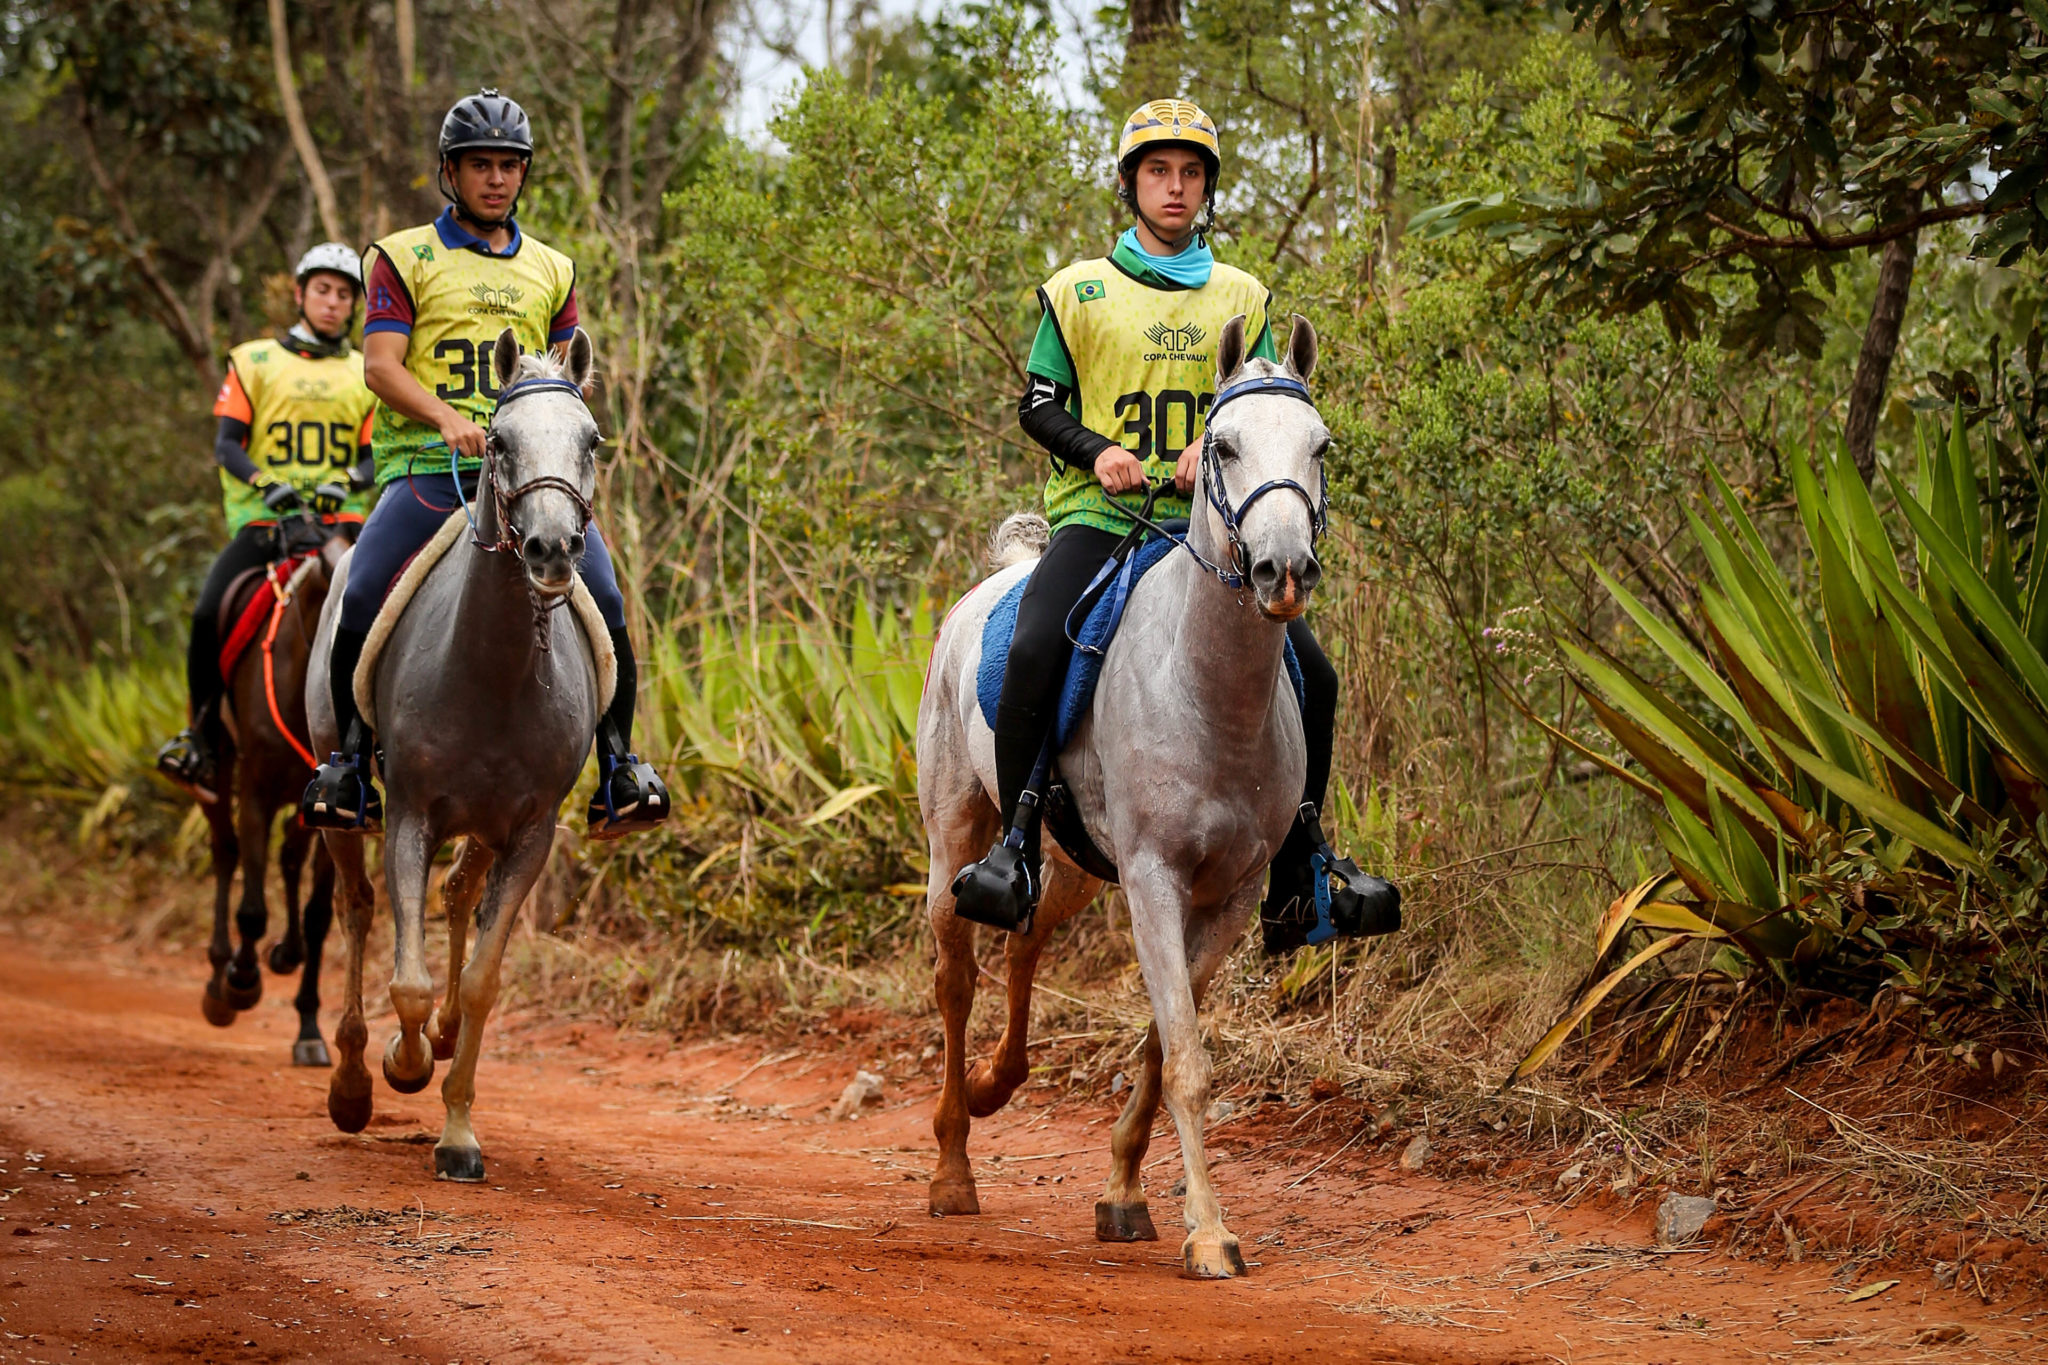 Endurance World Brasilia. Riders enjoying the ride.